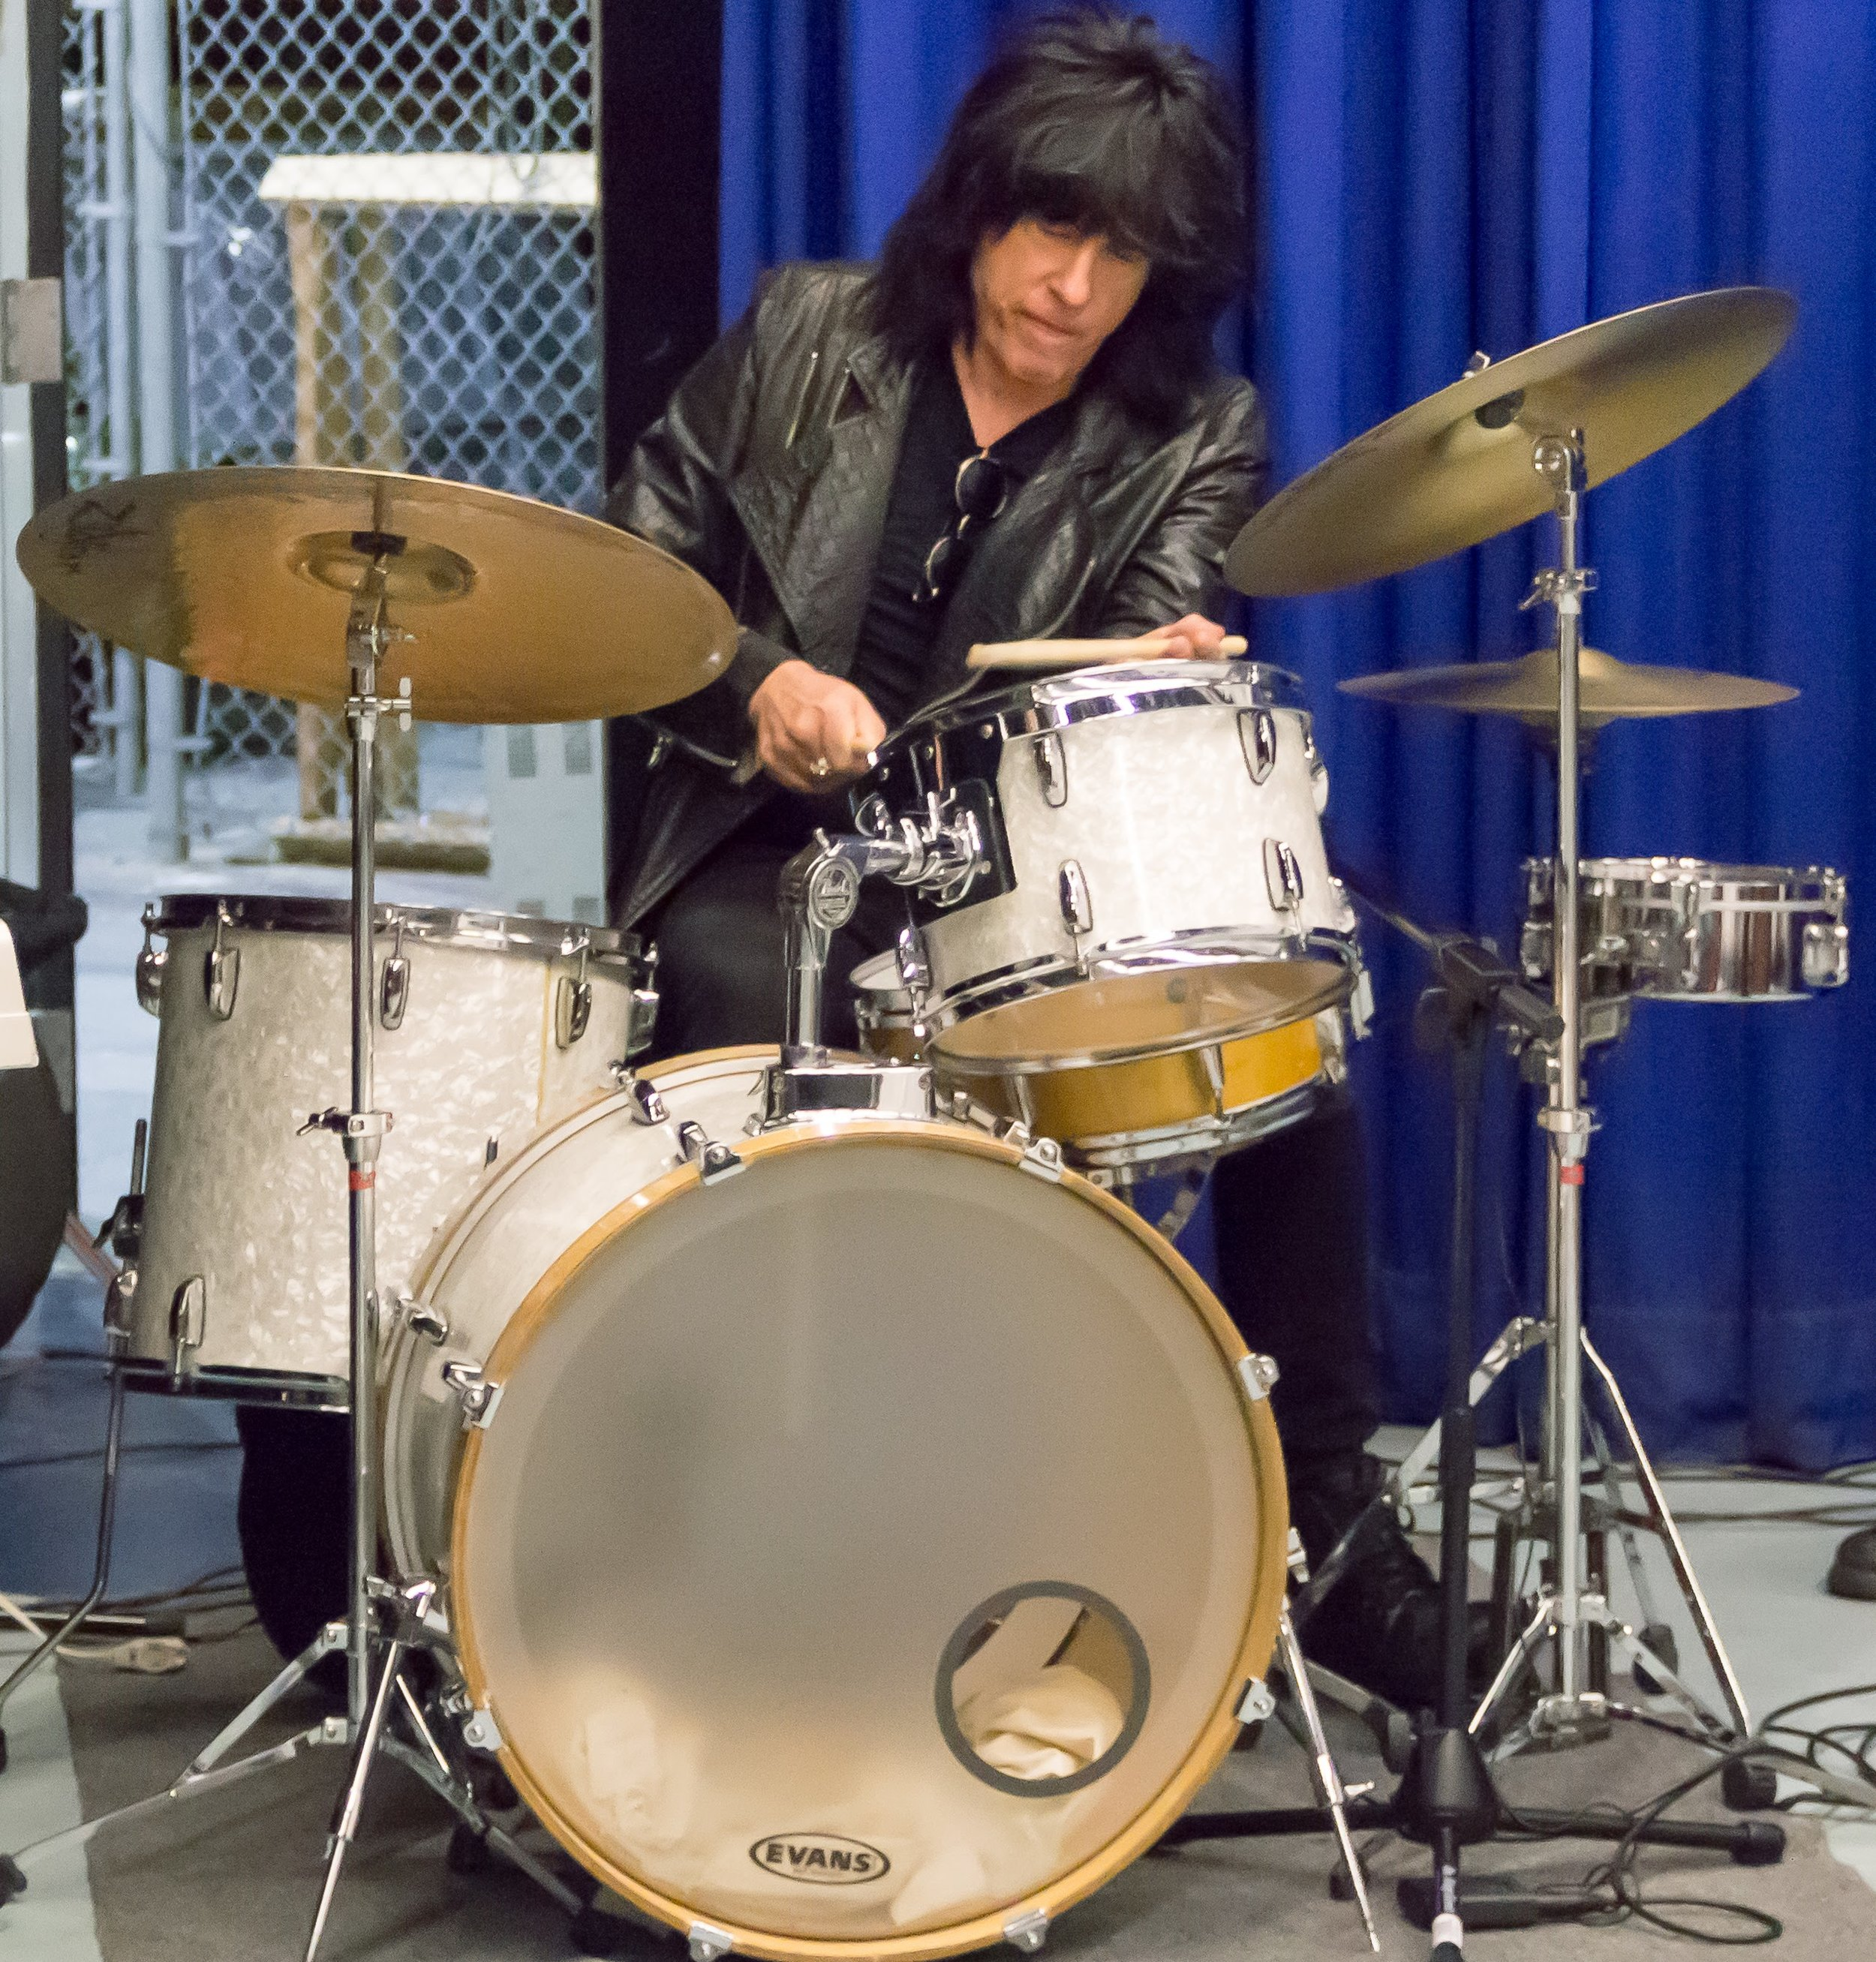 "Late Night ""Flashback"" photo with very special guest Rock n' Roll Hall of Famer Marky Ramone drummer of the legendary punk rock band the Ramones. Marky appeared on our special 100th episode on January 28, 2016. This is a never seen photo of Marky playing our late night bands drums during sound check."